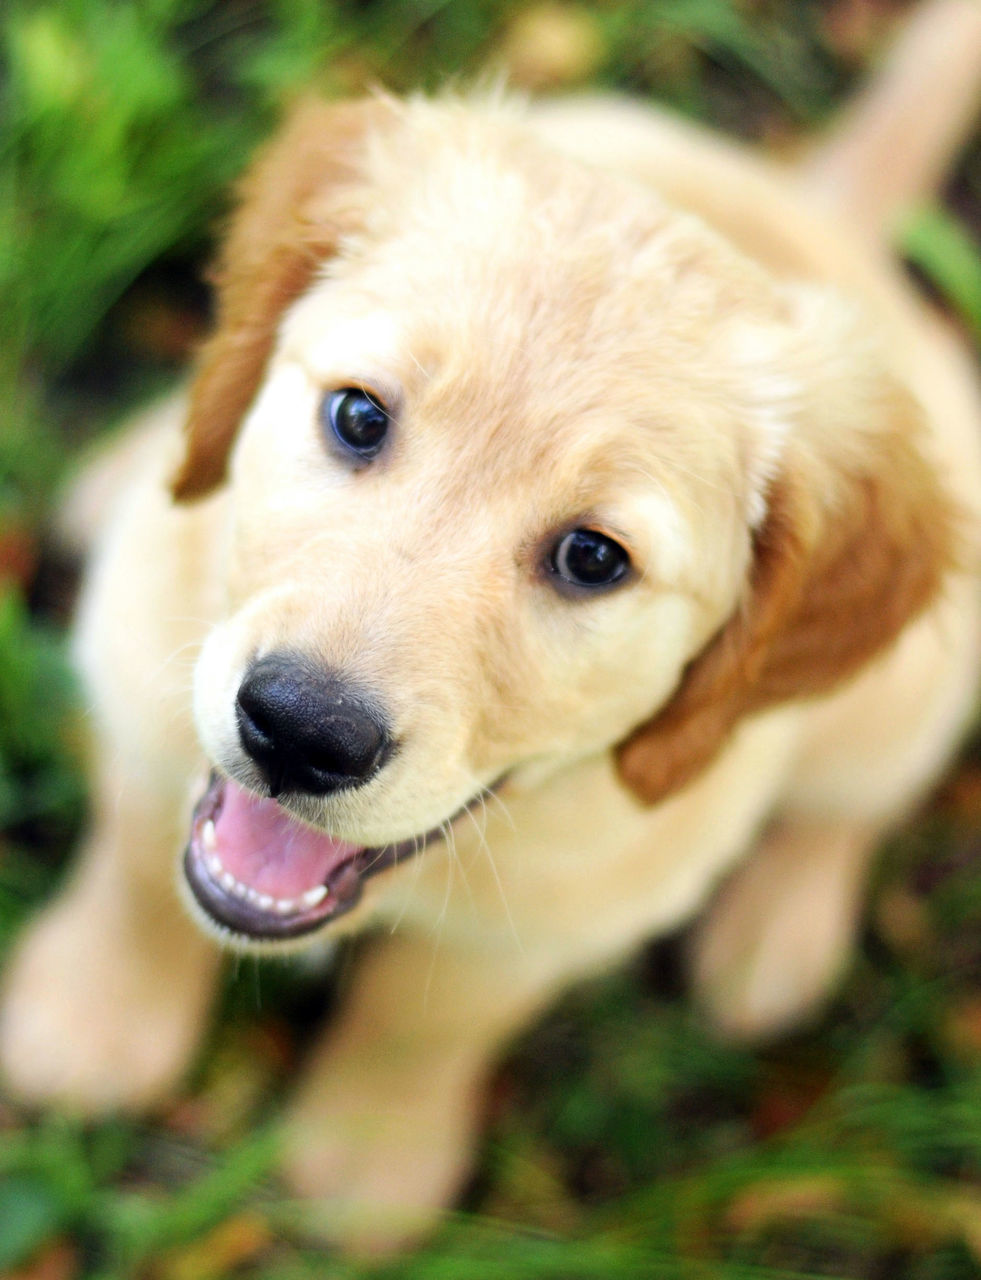 dog, pets, one animal, domestic animals, mammal, animal themes, close-up, mouth open, looking at camera, focus on foreground, portrait, sticking out tongue, no people, day, outdoors